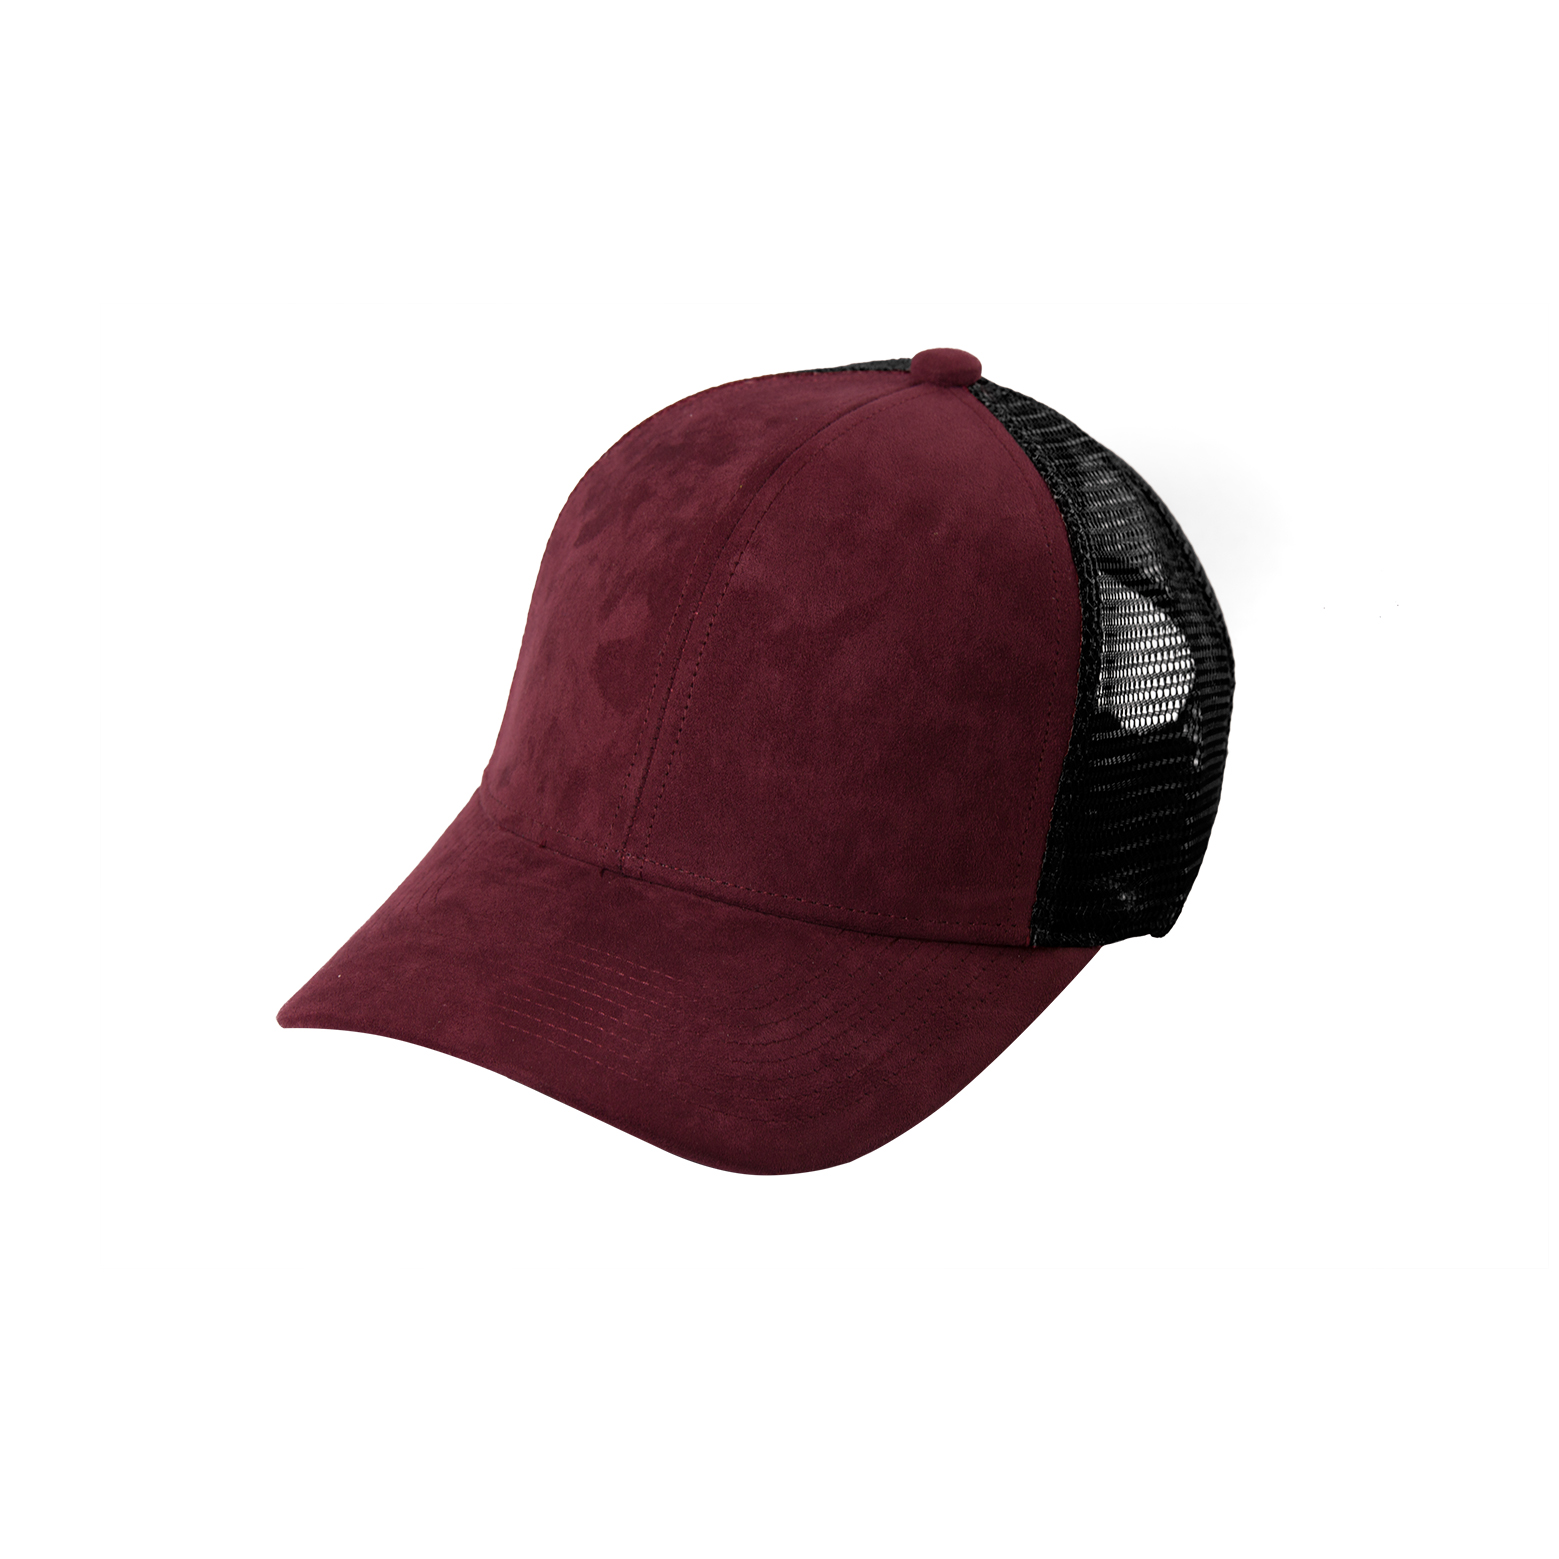 TRUCKER CAP BORDEAUX SUEDE FRONT SIDE